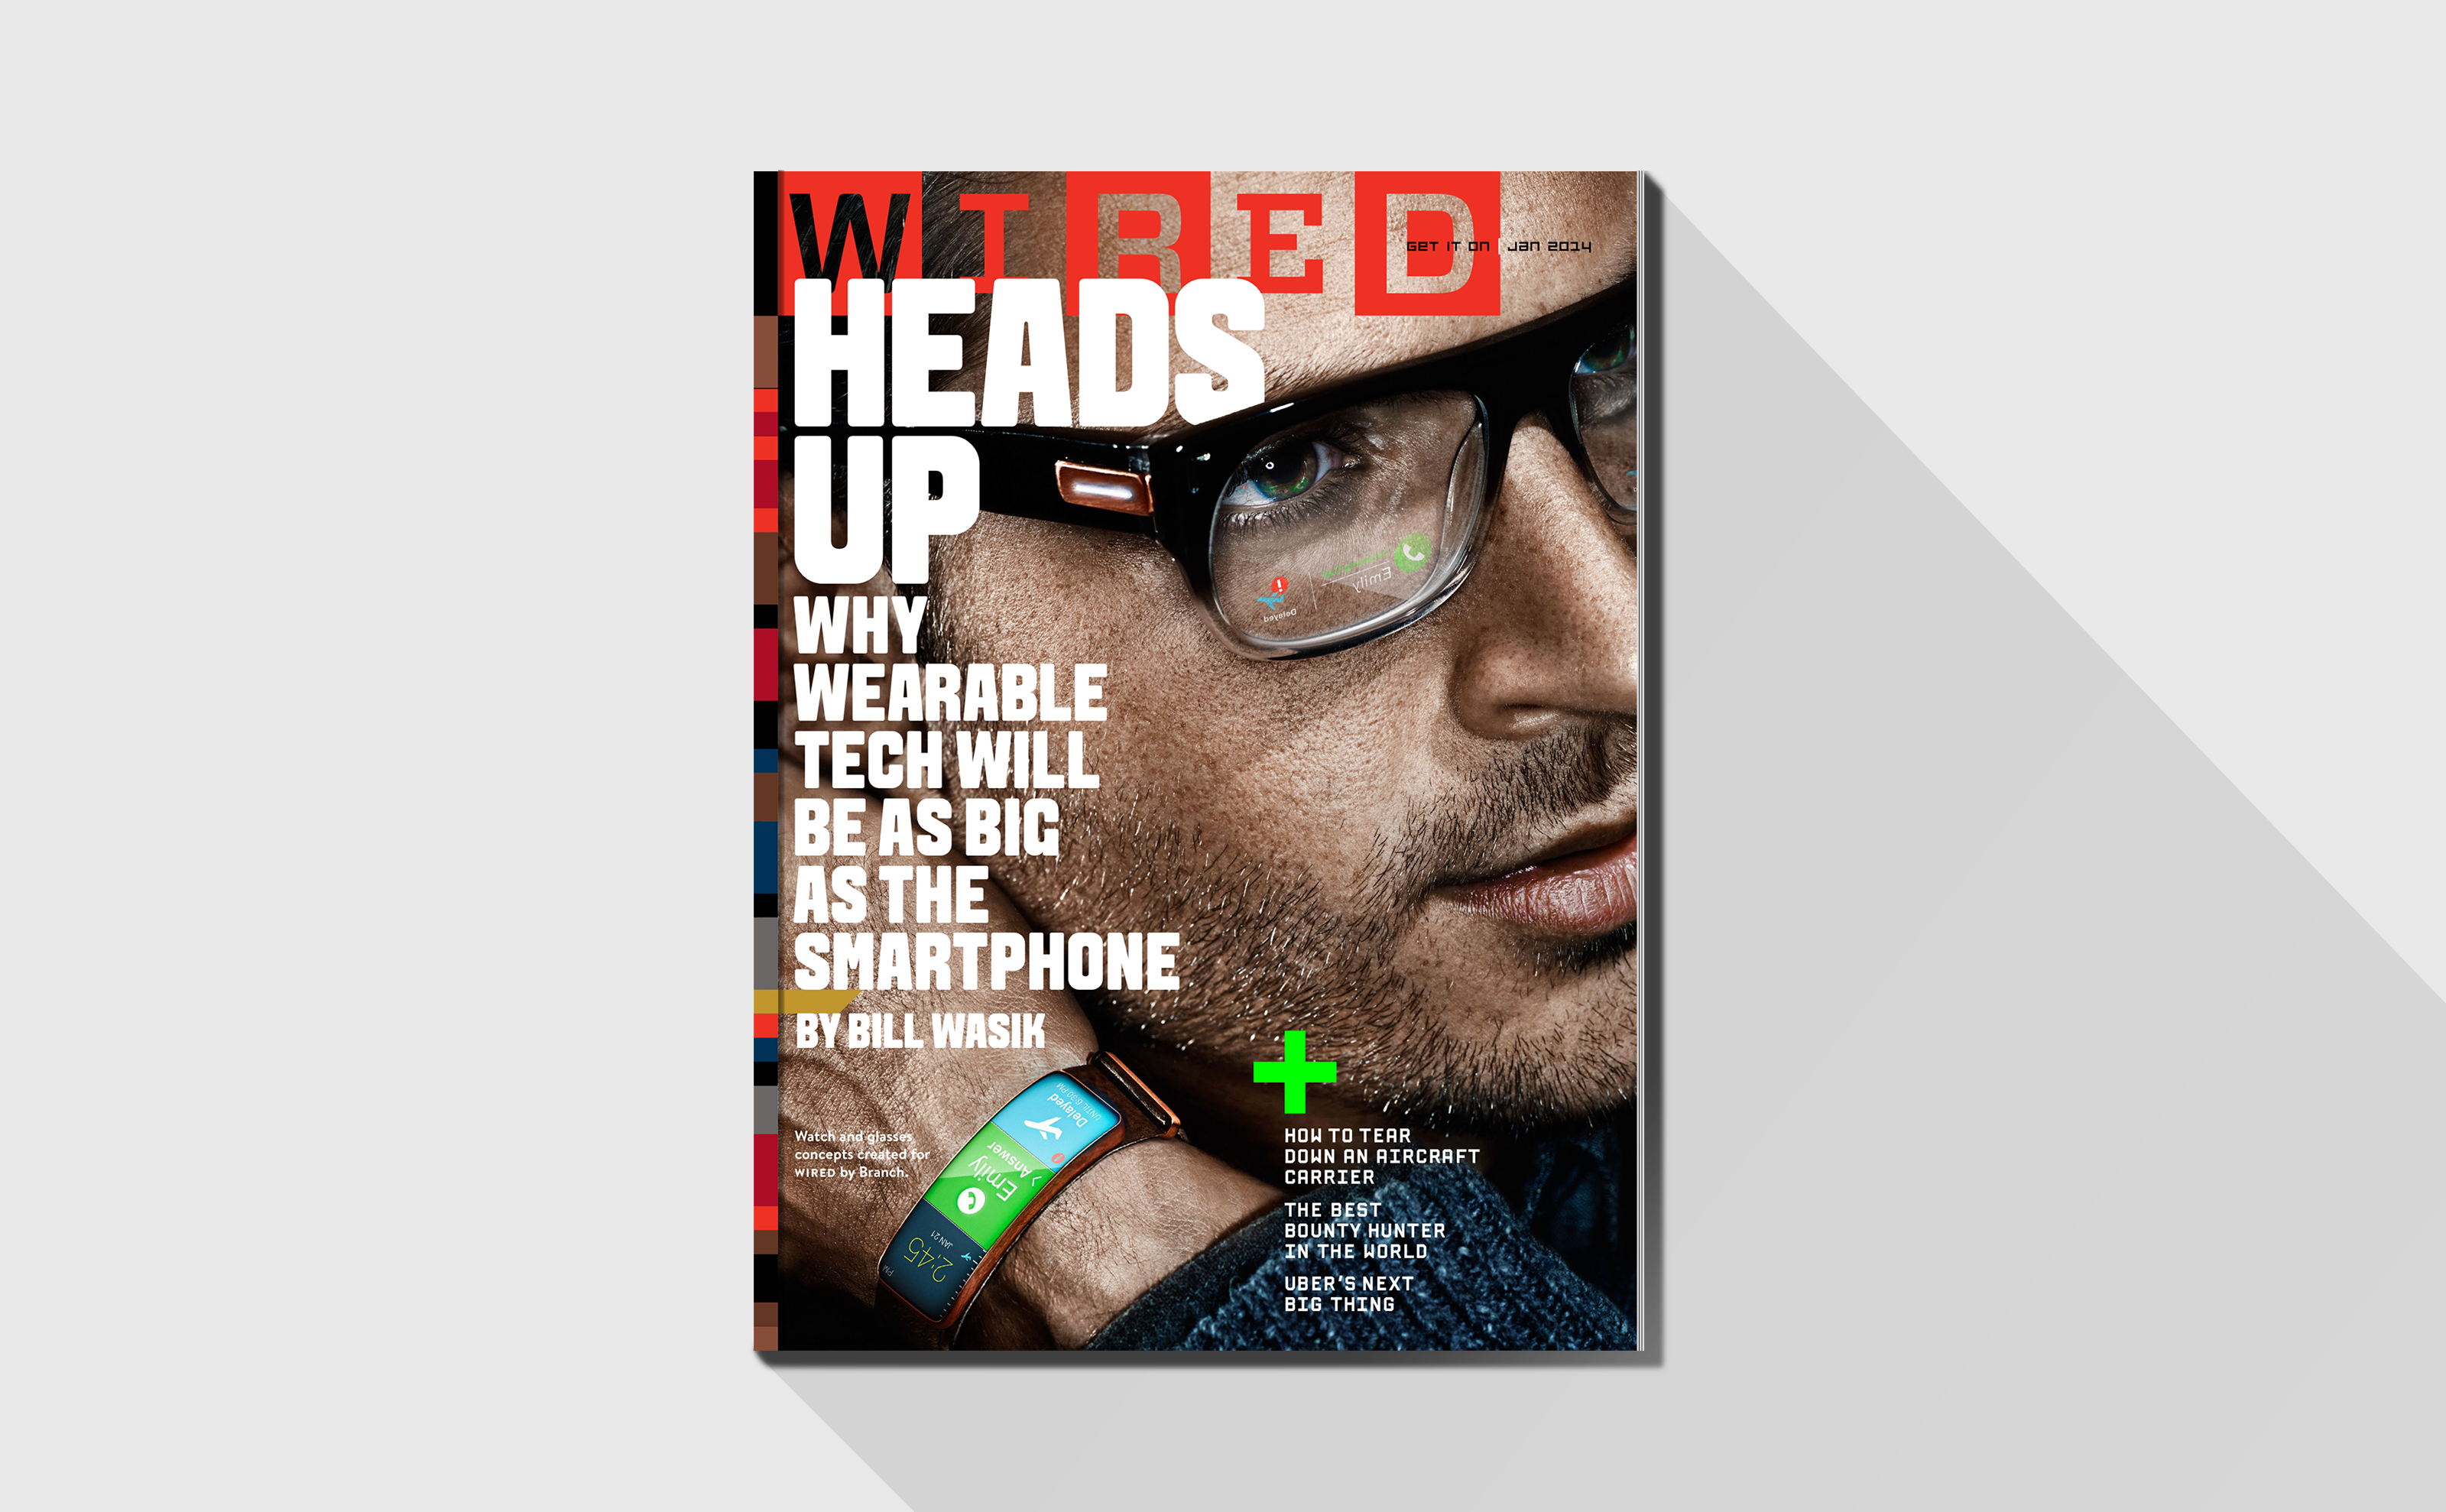 Wired Heads up Cover with smart watch illustration and design